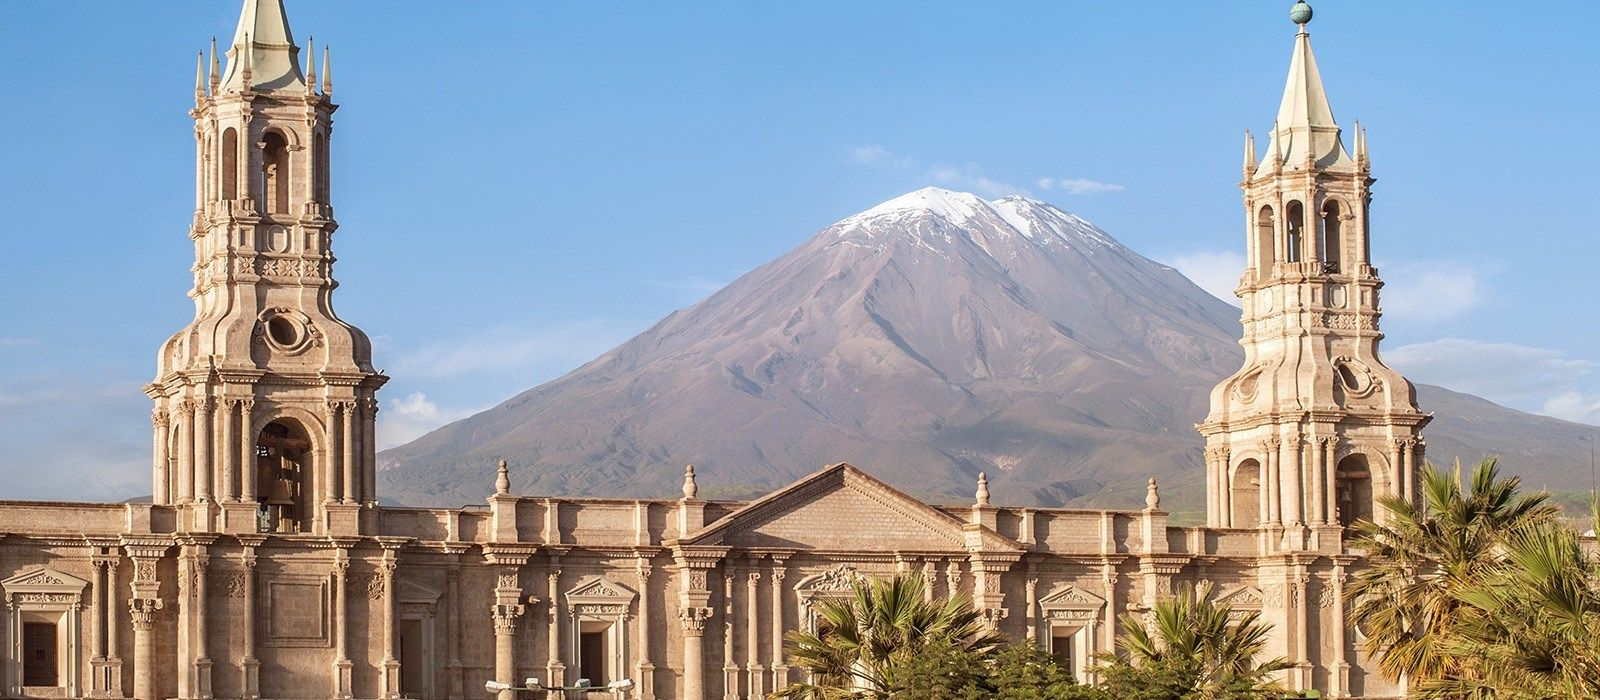 Destination Arequipa Peru